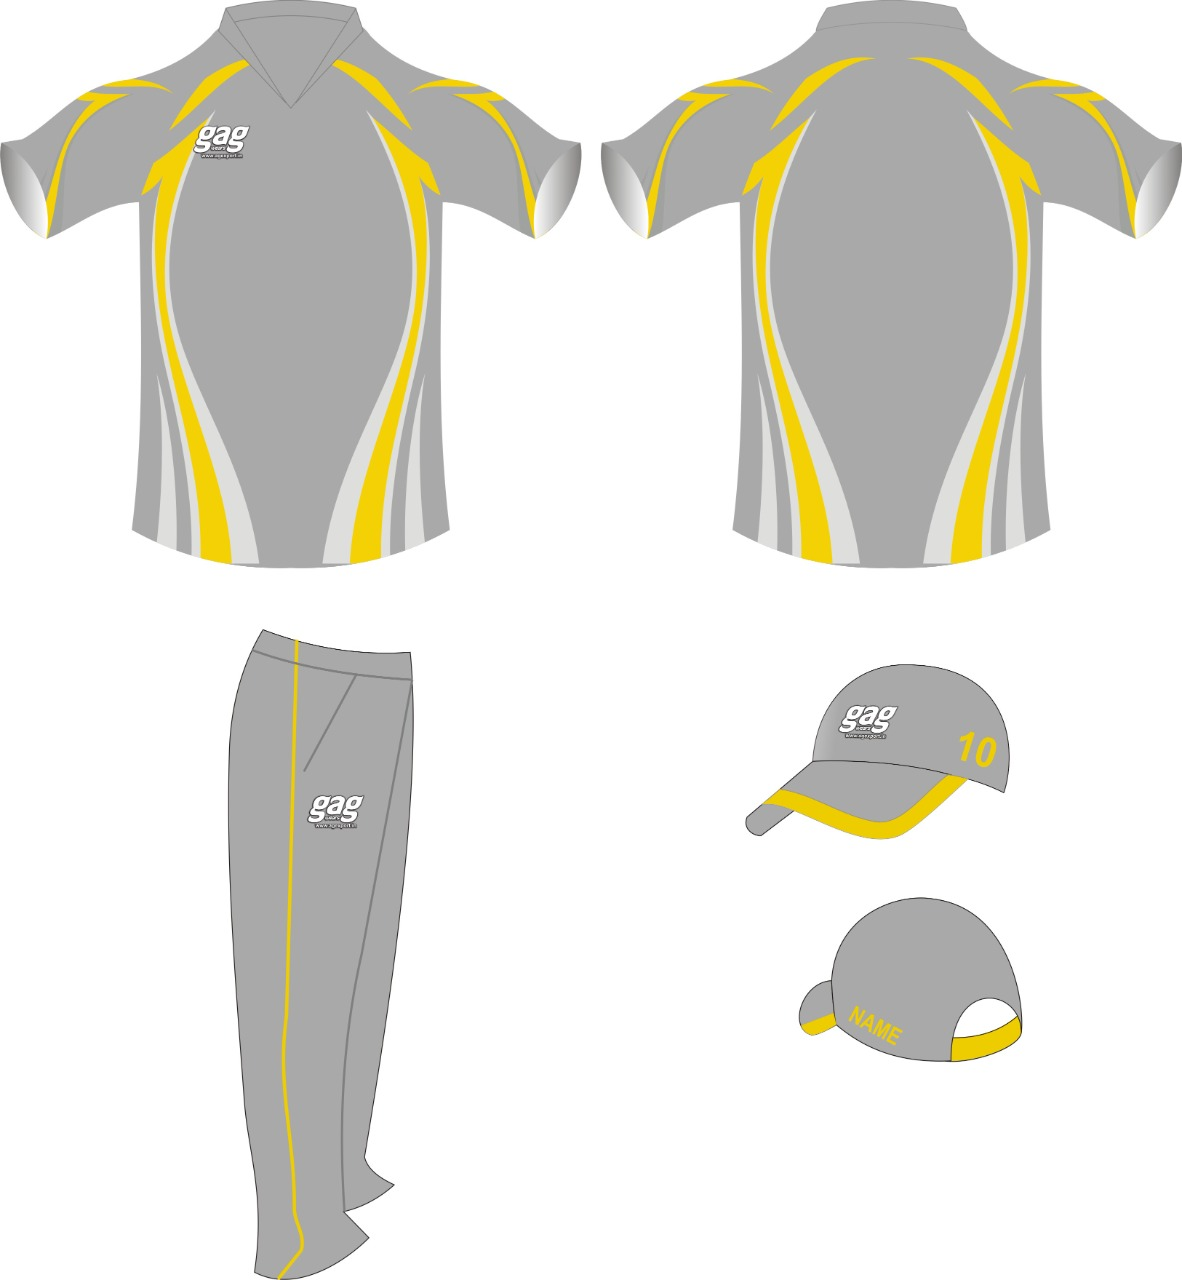 Cricket Tshirt Manufacturers in Jalandhar in South Korea